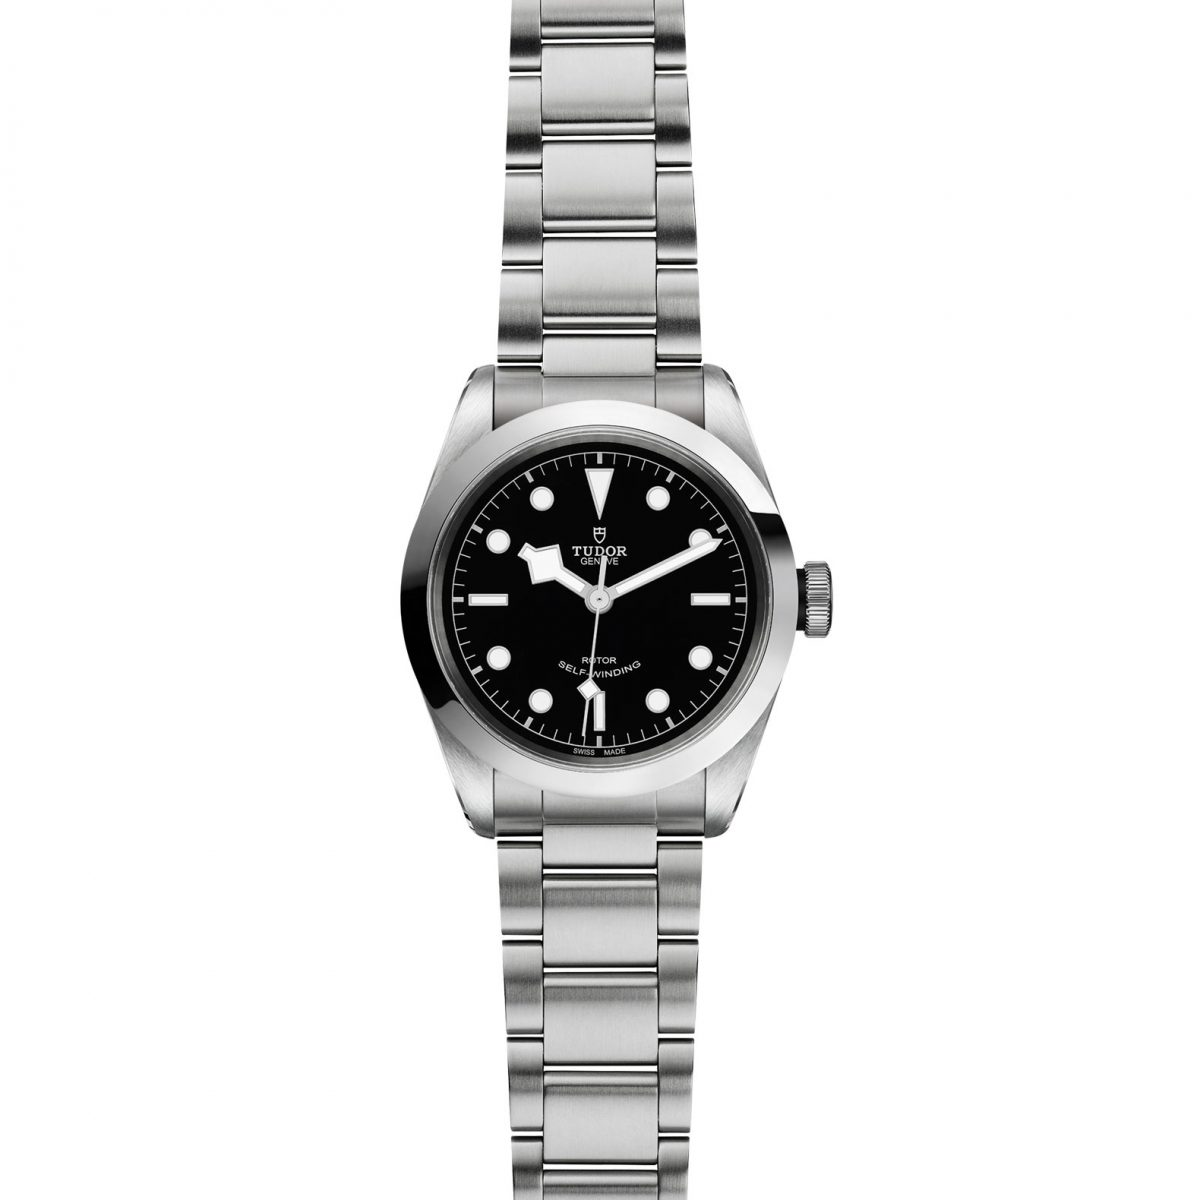 TUDOR Black Bay 41